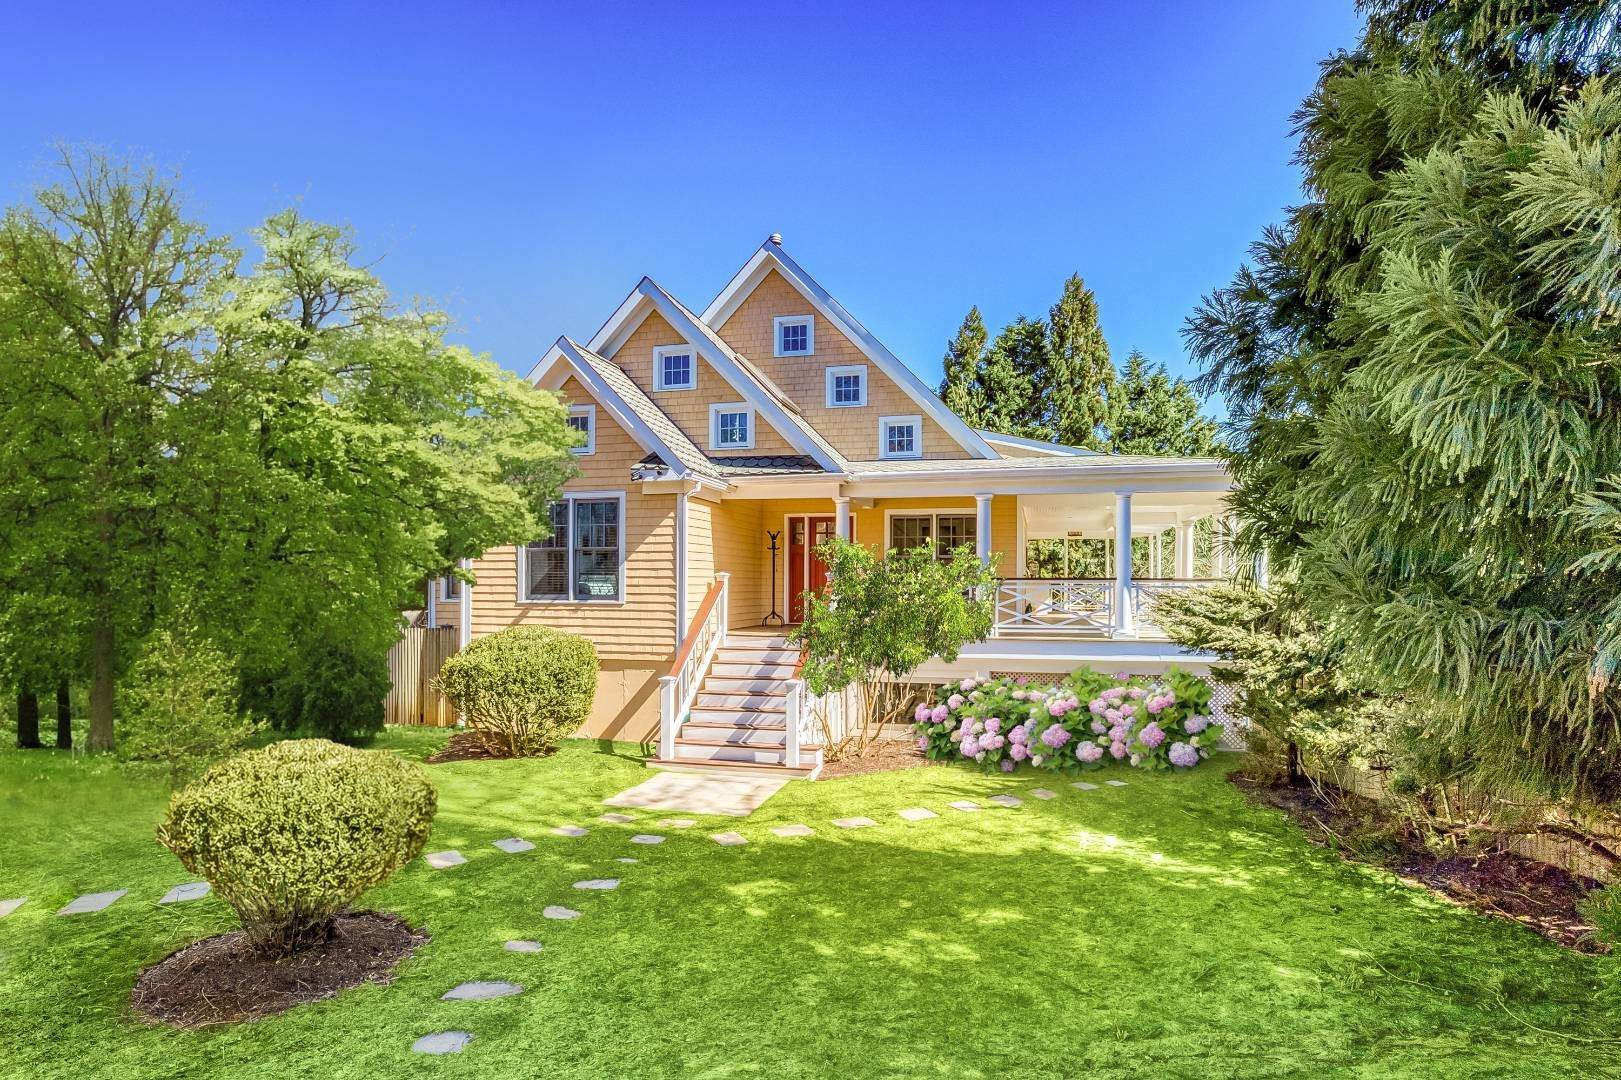 Single Family Home for Sale at Shelter Island Beach Idyll With Guest House And Pool 1 Brander Parkway, Shelter Island Heights, NY 11964